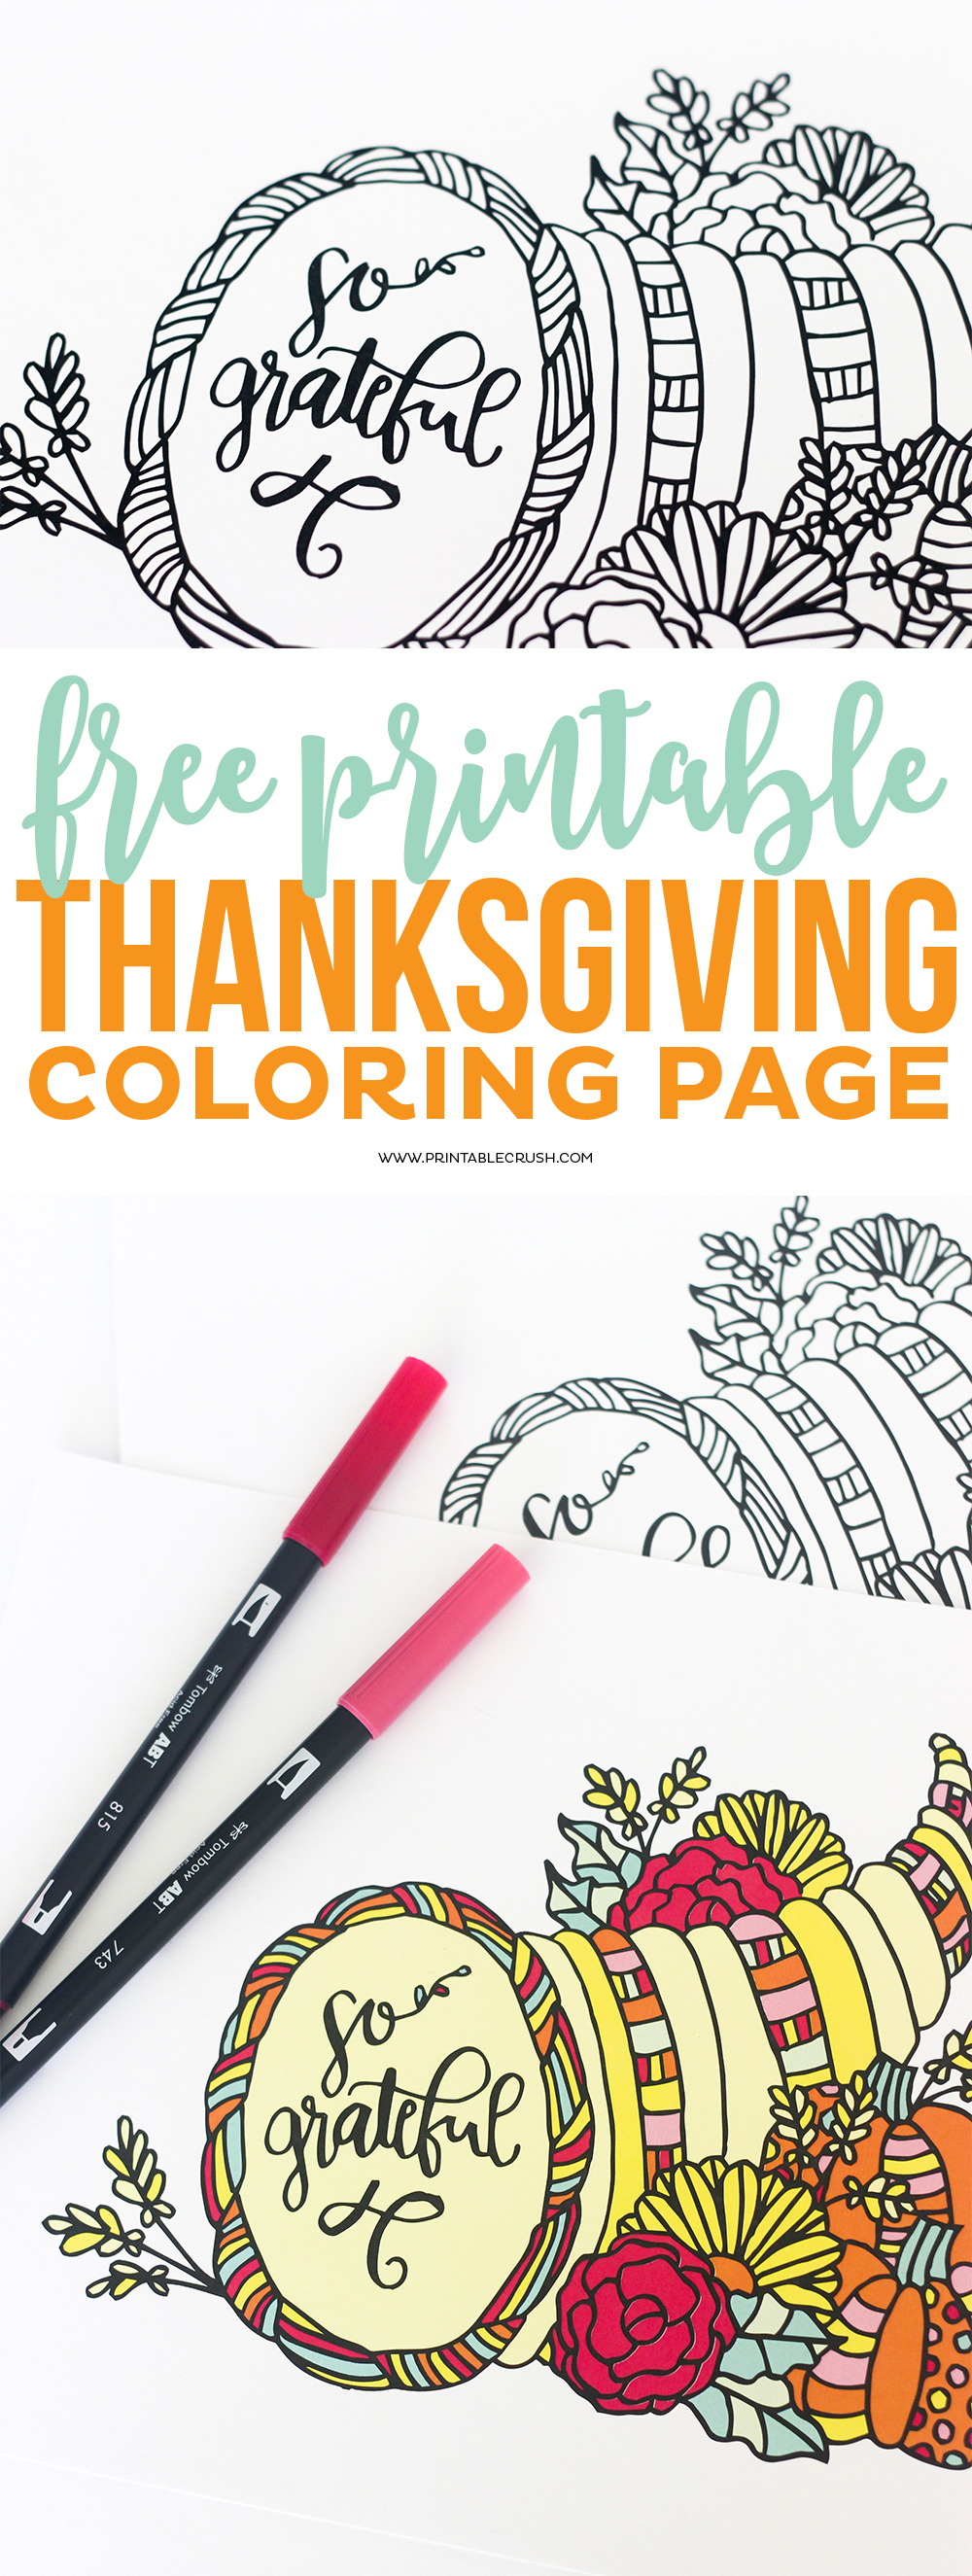 Download this pretty Thanksgiving Coloring Page for your dinner guests. It's a great coloring page for adults and children.